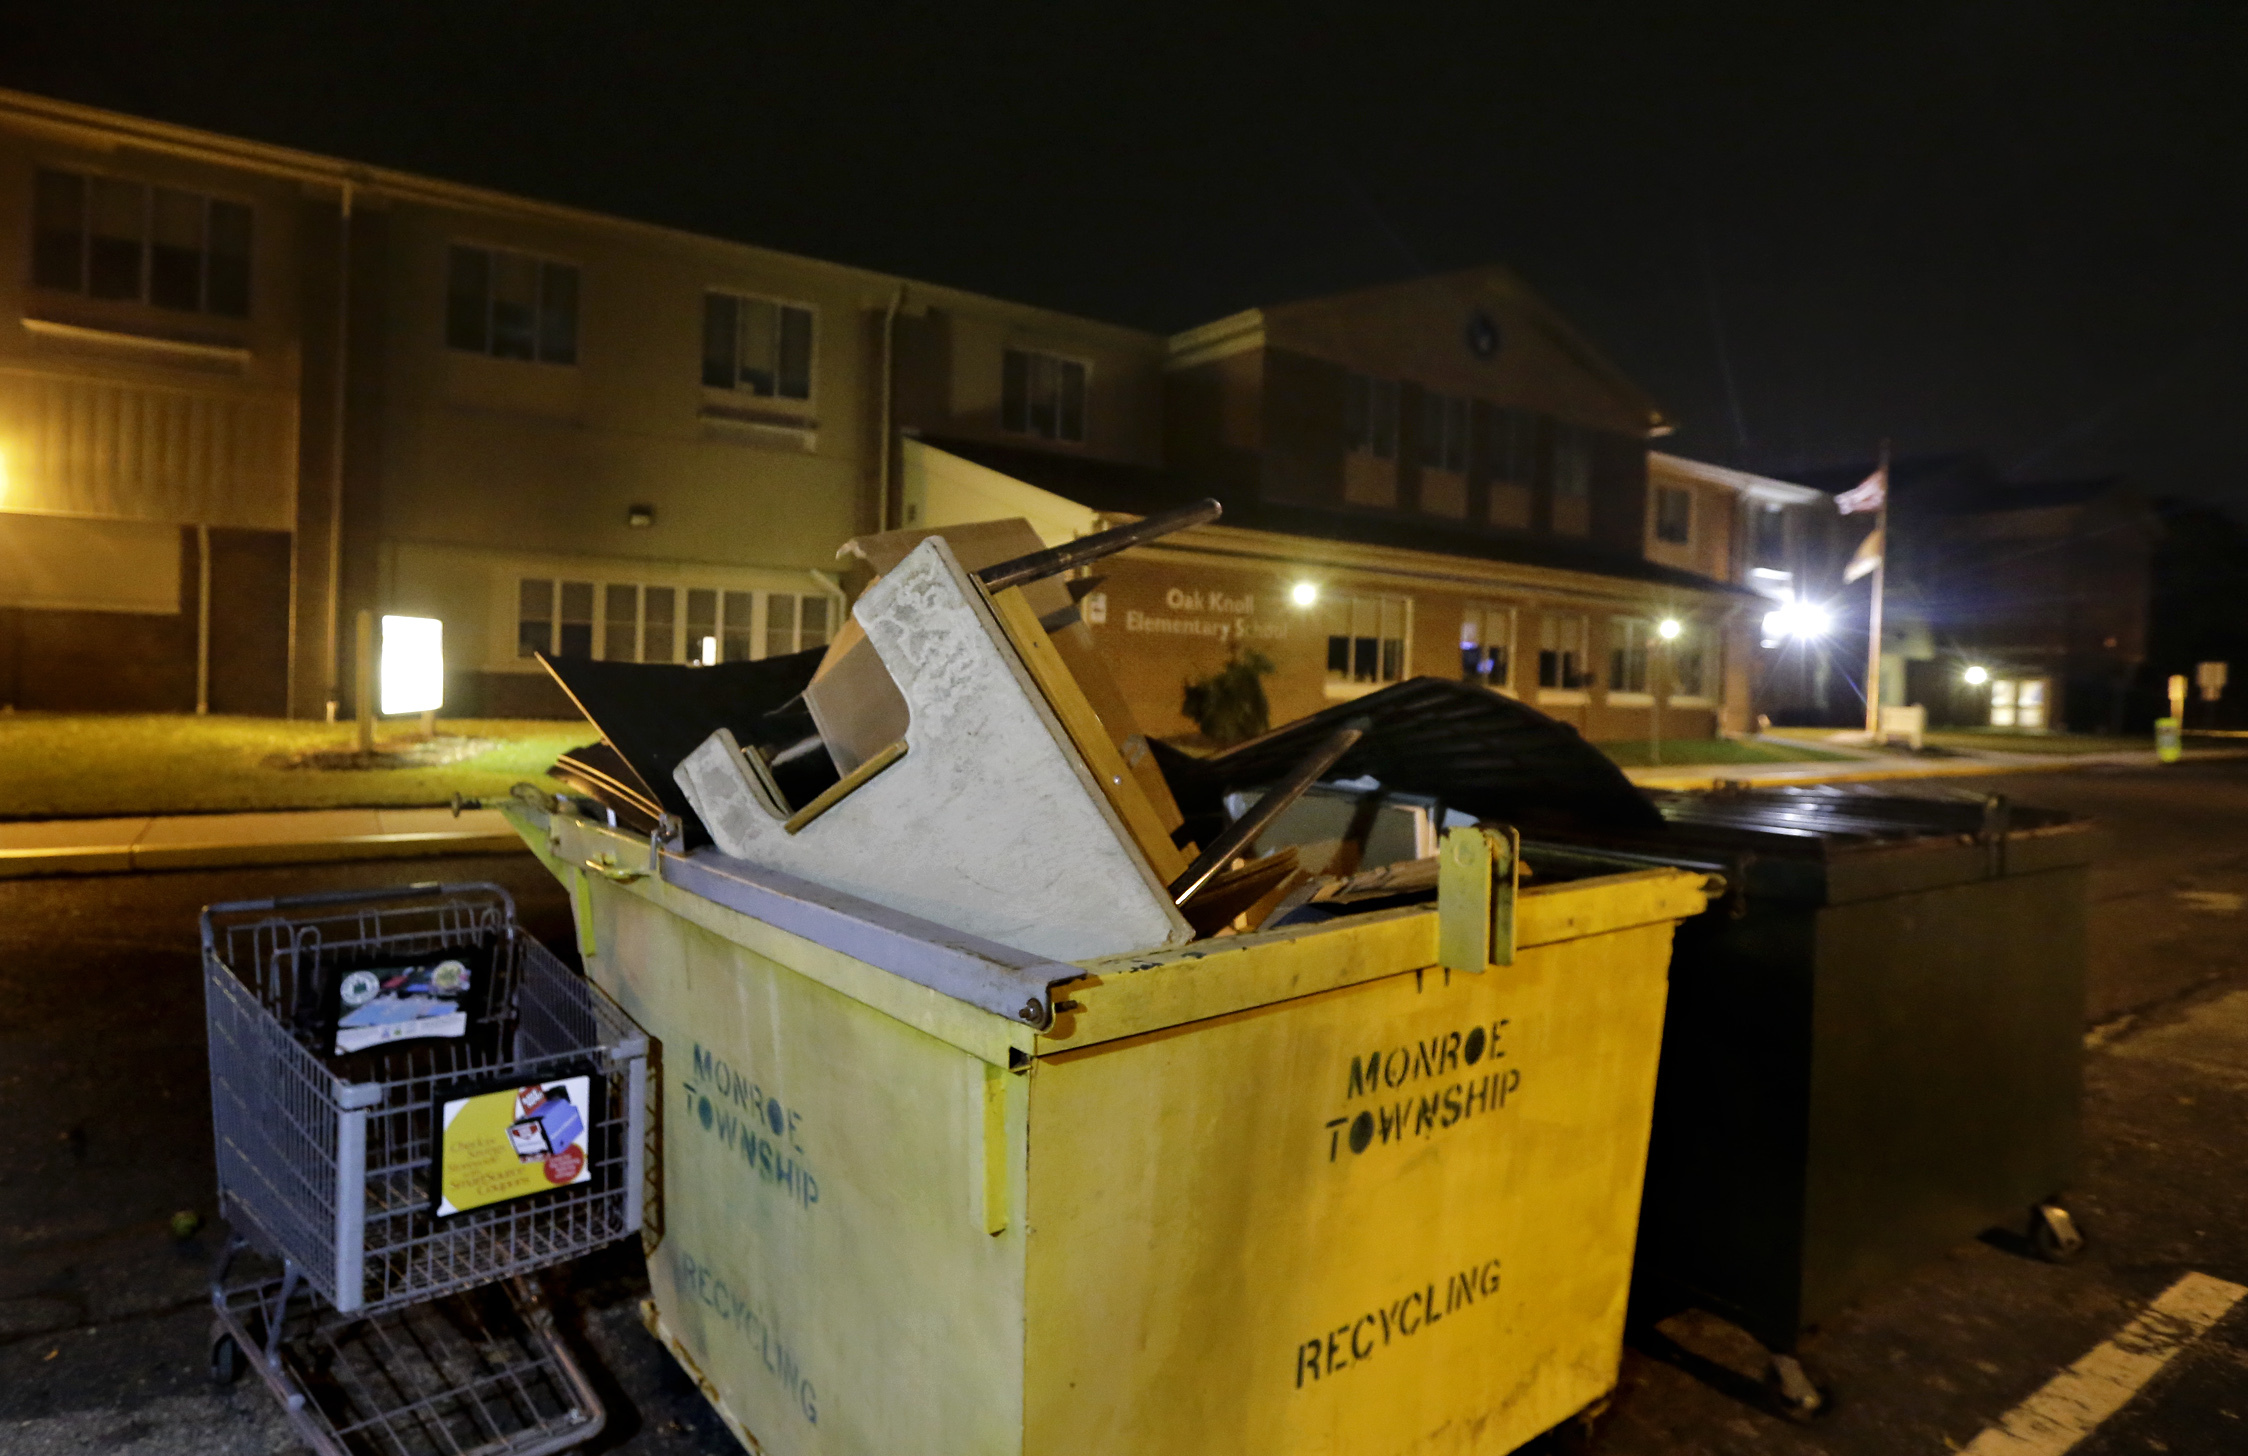 A school desk, air filters and various school related supplies in the Oak Knoll Elementary School dumpster just before 8pm on Oct. 11, 2017. Oak Knoll is one of the closed schools.